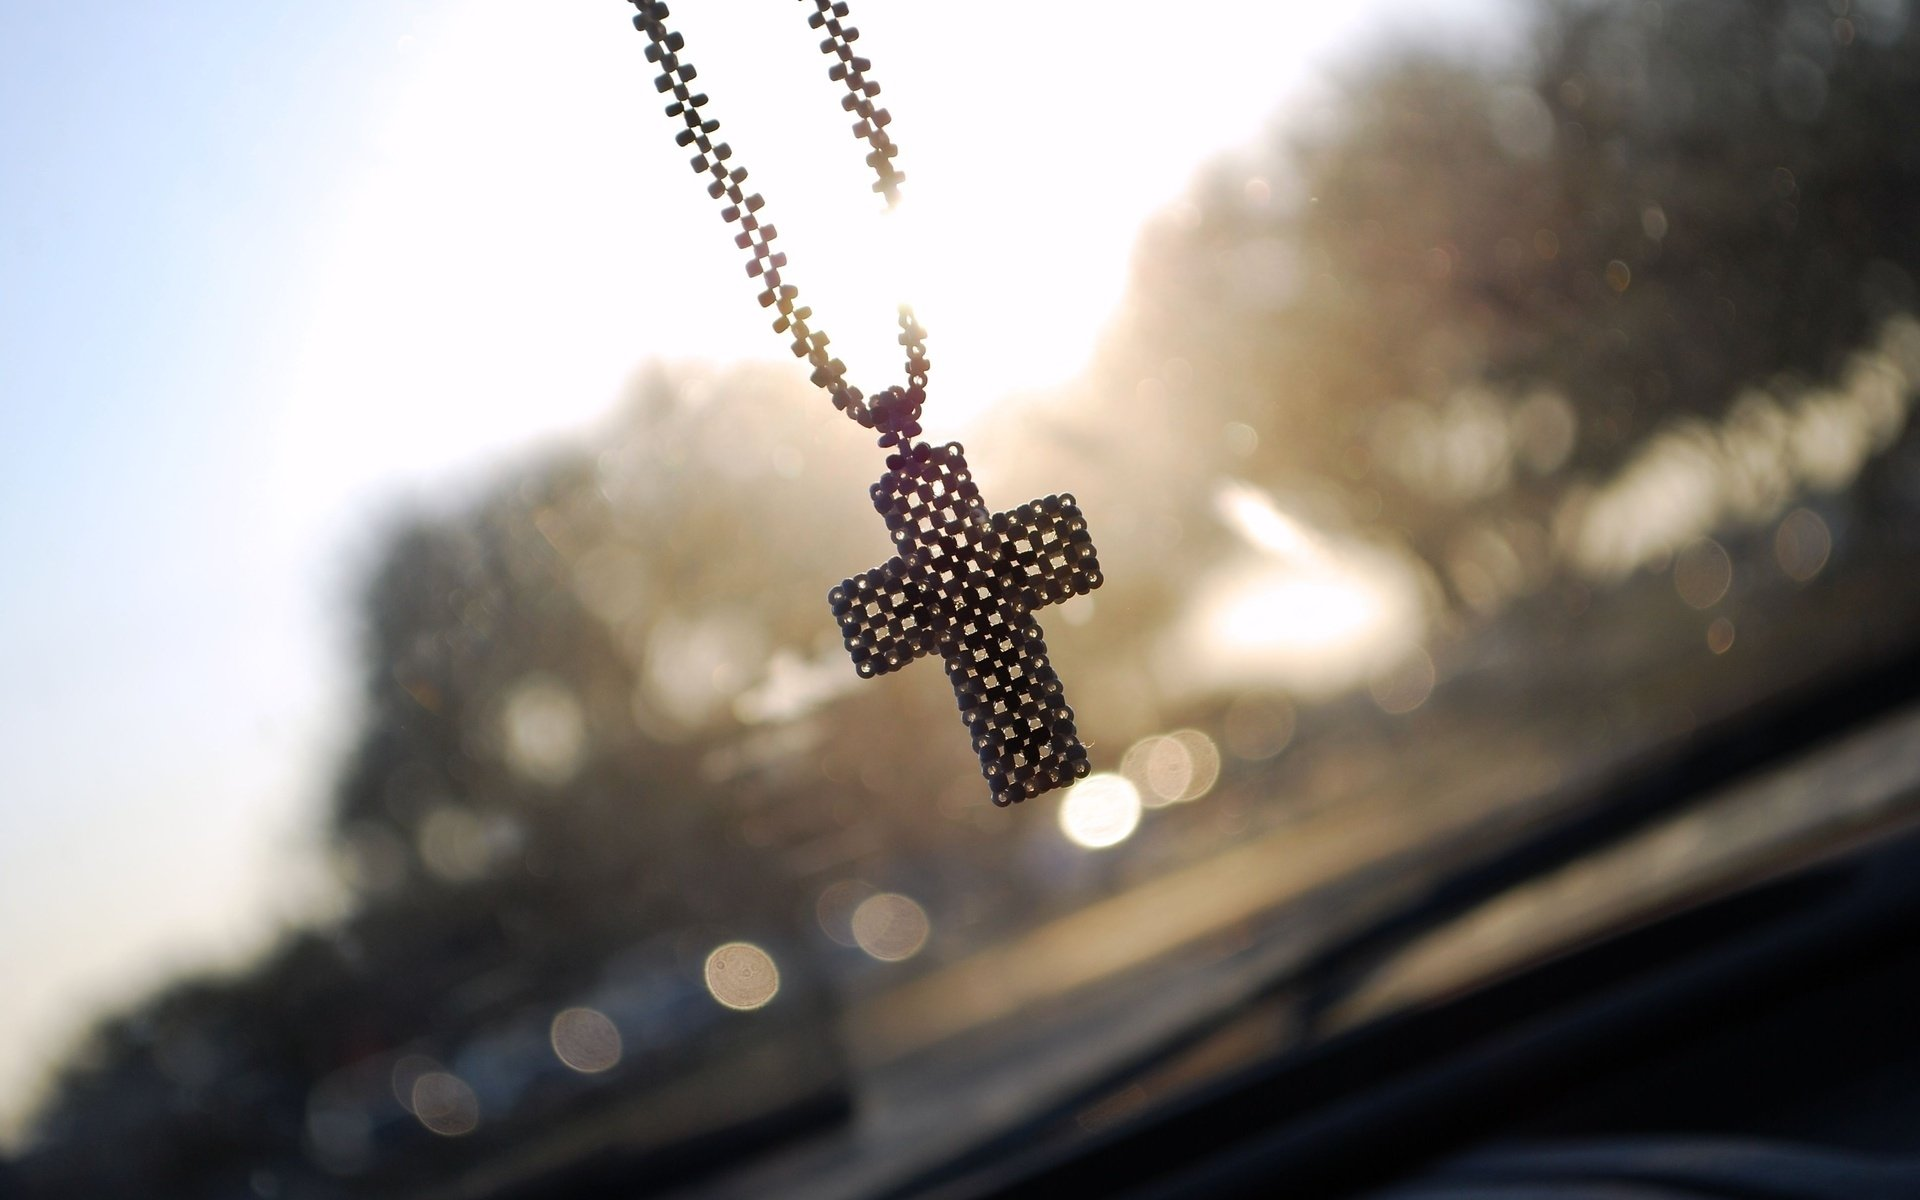 26 Cross HD Wallpapers | Backgrounds - Wallpaper Abyss